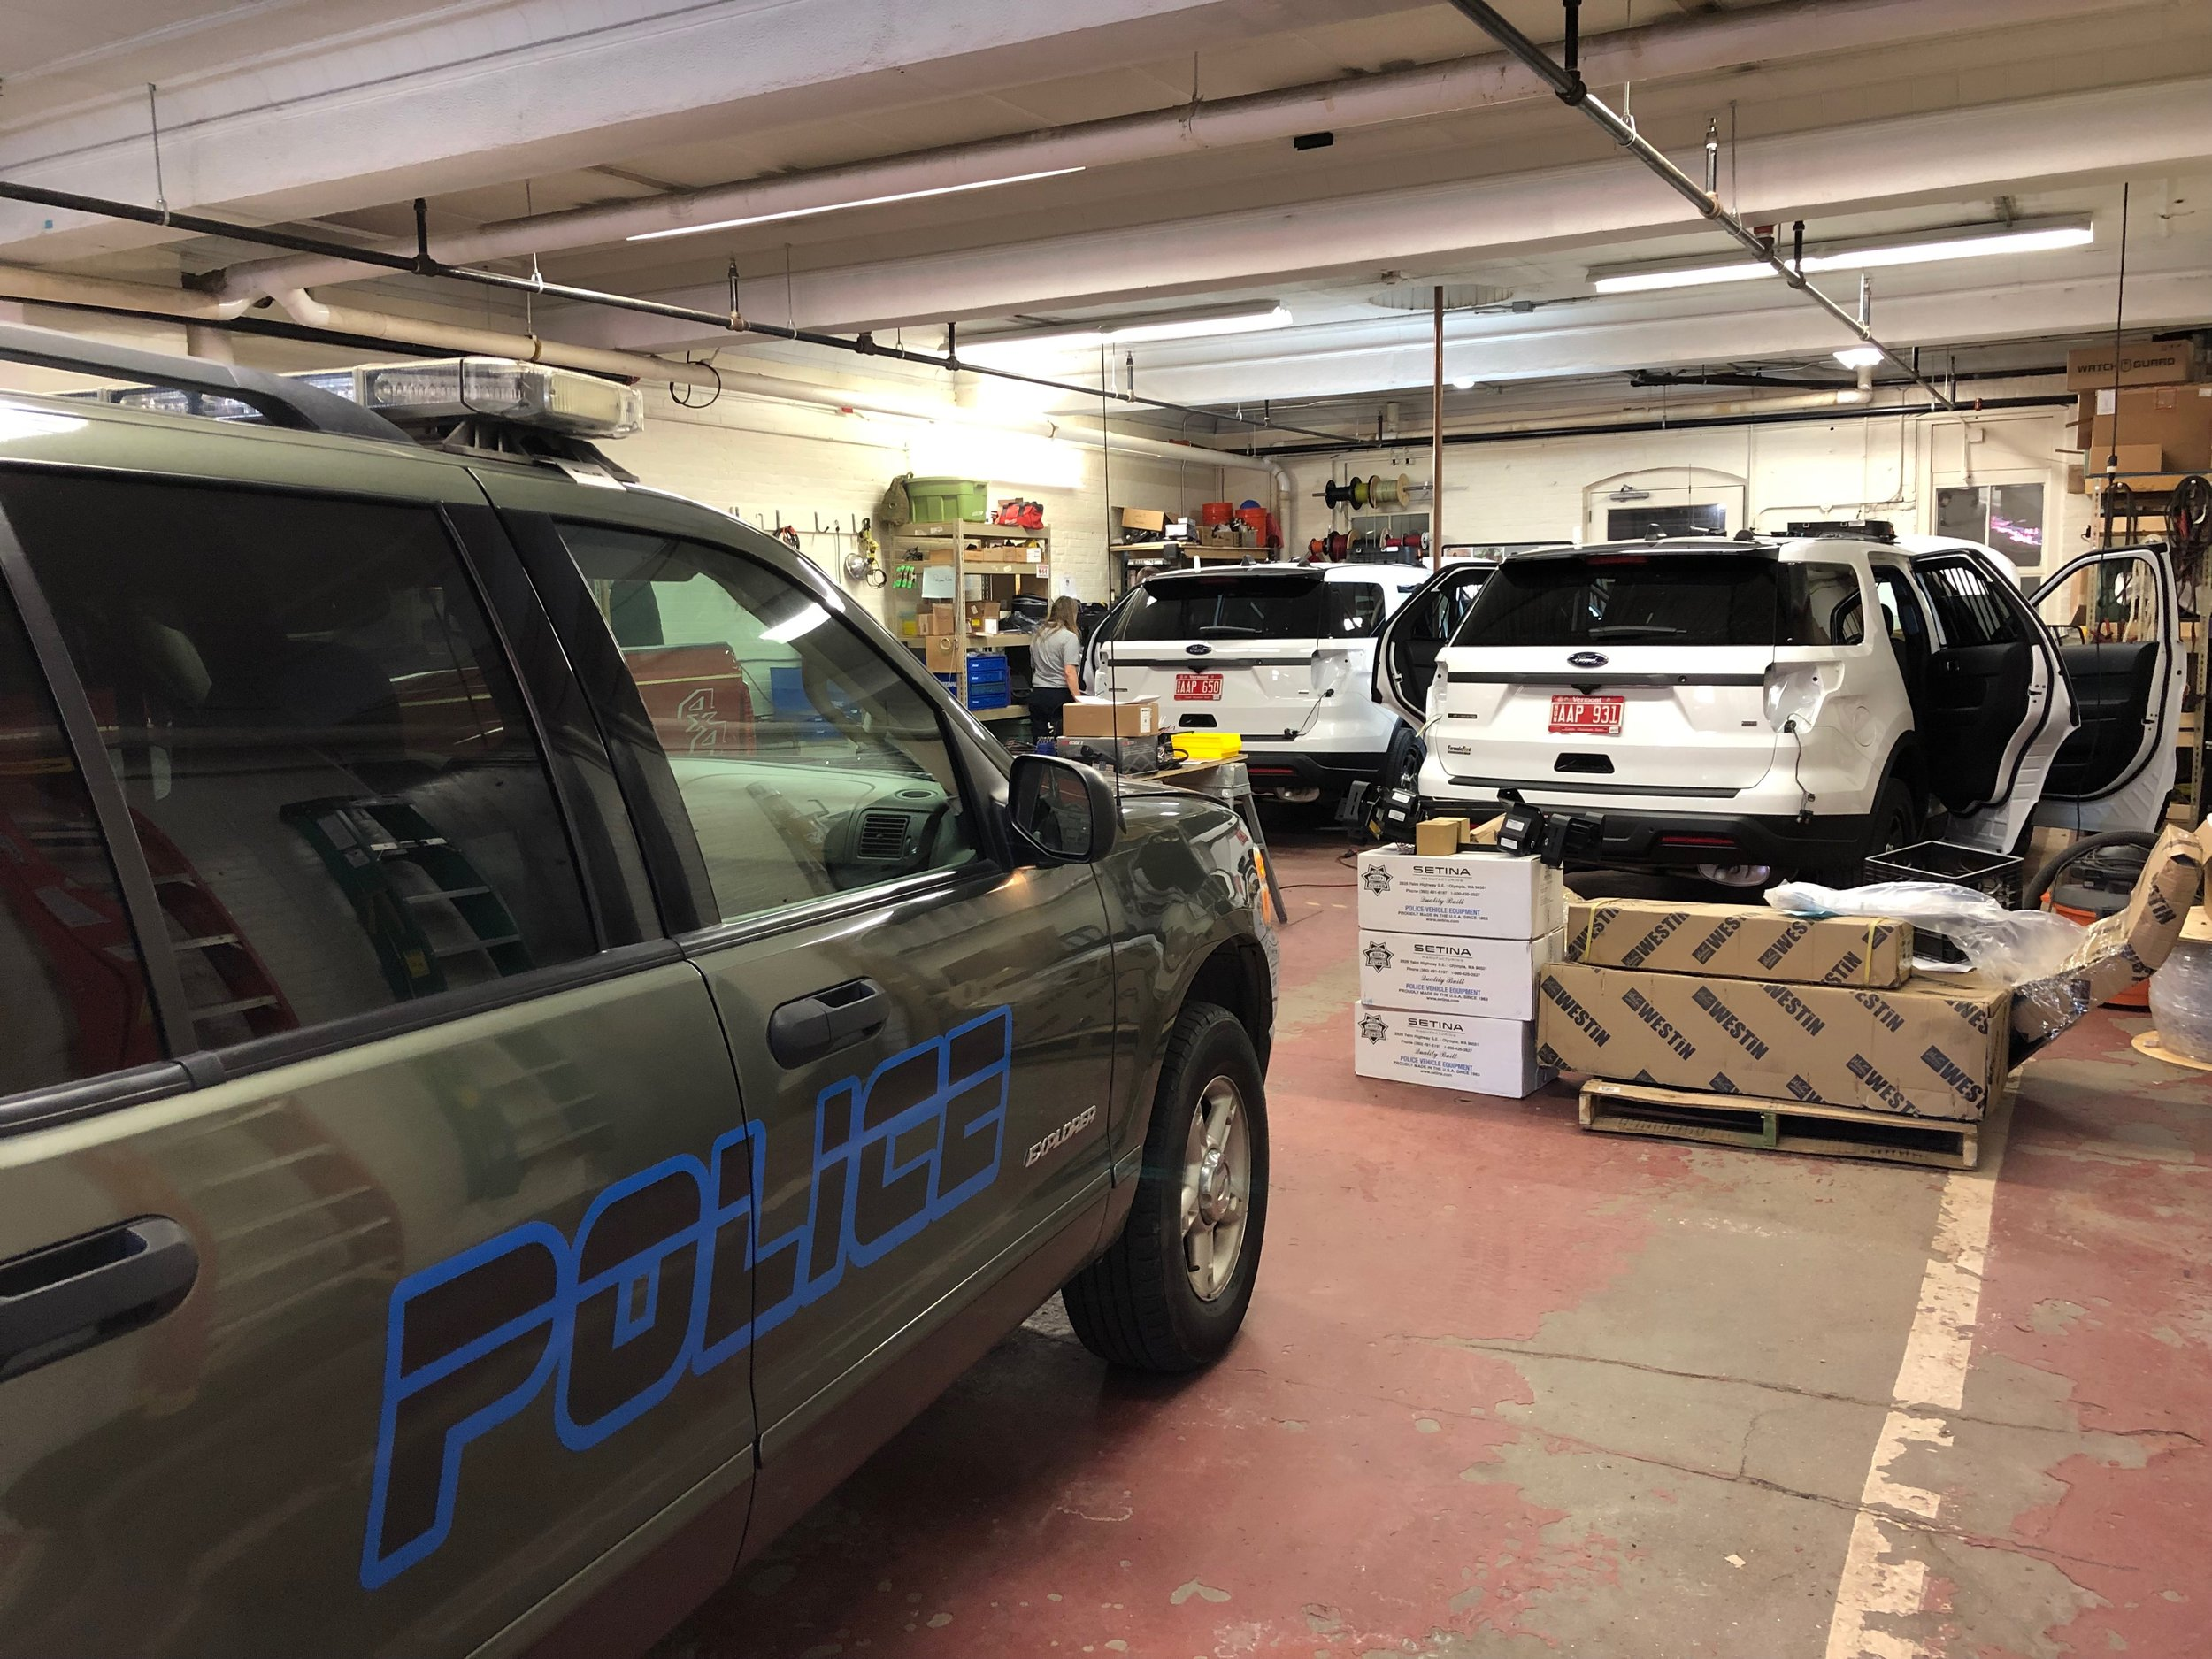 """Our Upfitting Division is busy. The 2 white cruisers in front are new for Brattleboro PD. They are getting a """"soup to nuts"""" complete upfitting. The gray cruiser is from Roxbury PD and is getting all equipment removed to be placed into a newer cruiser.  For all your needs contact Tom Powers at 603-355-2315 or at tpowers@firemutualaid.com"""